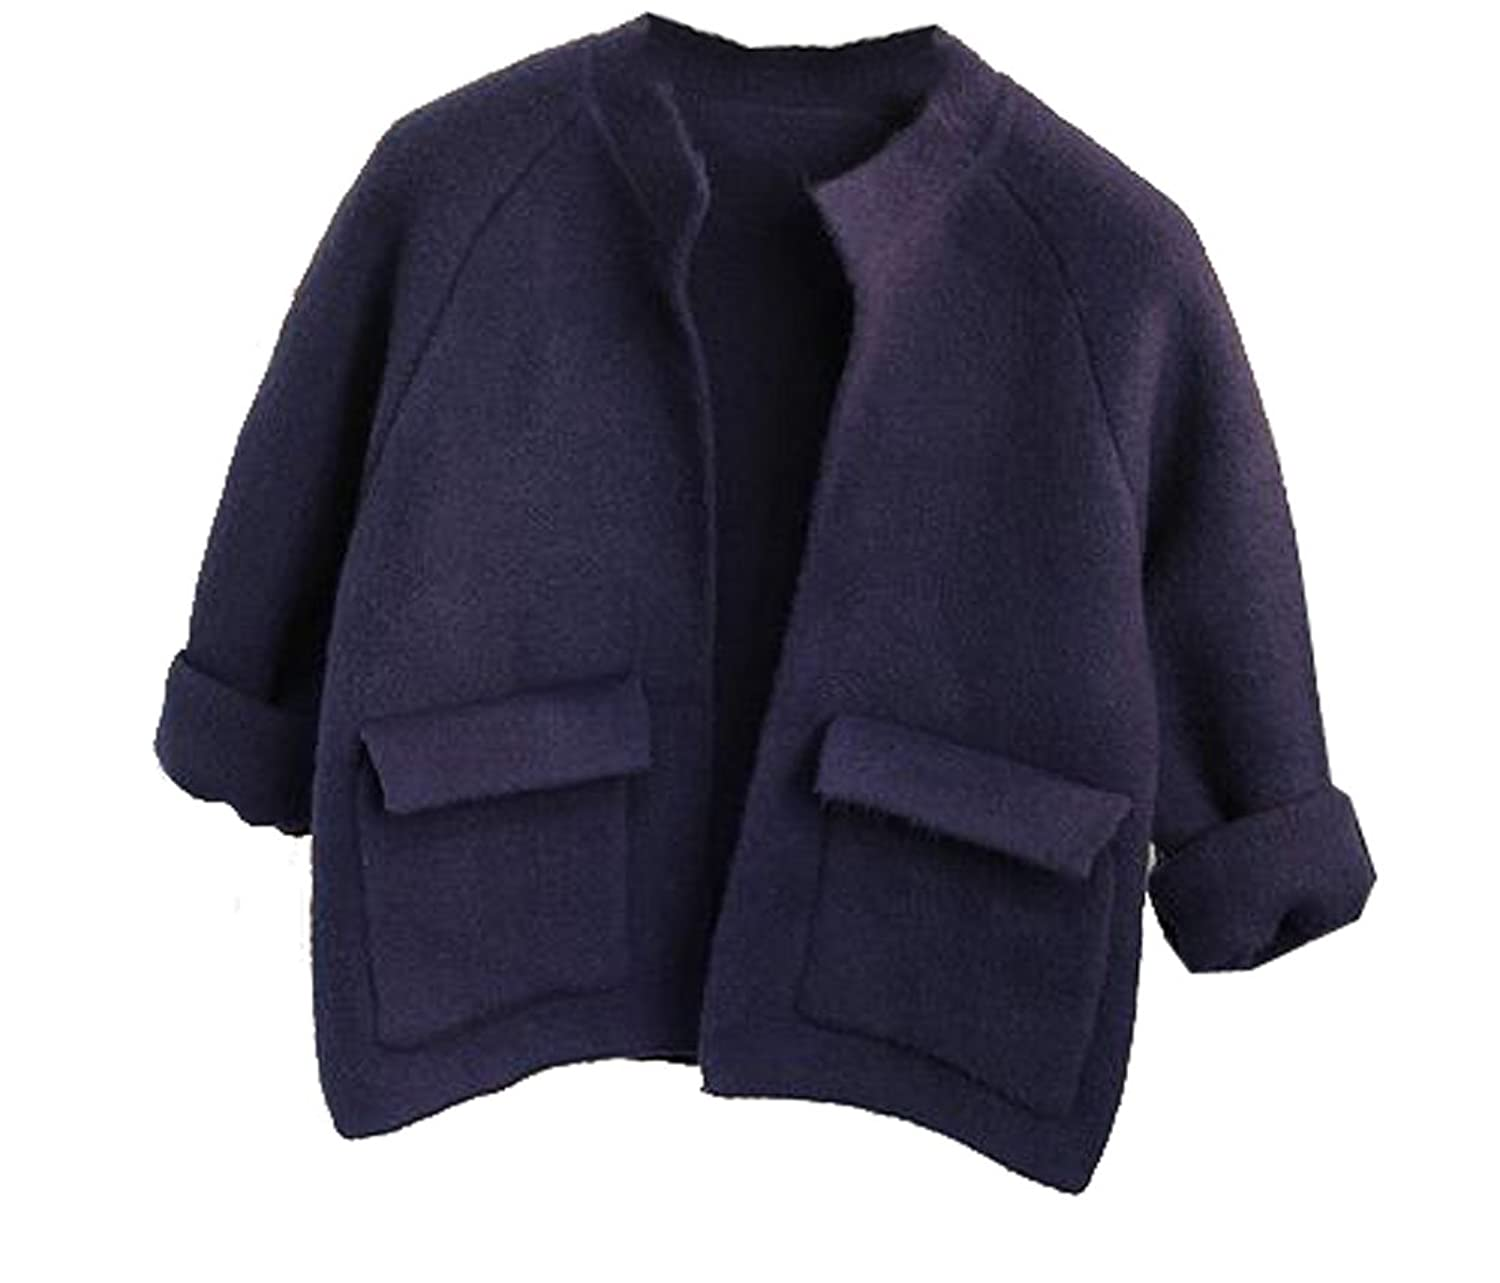 Honey GD Women's Knitting With Pockets Short Outerwear Cardigan